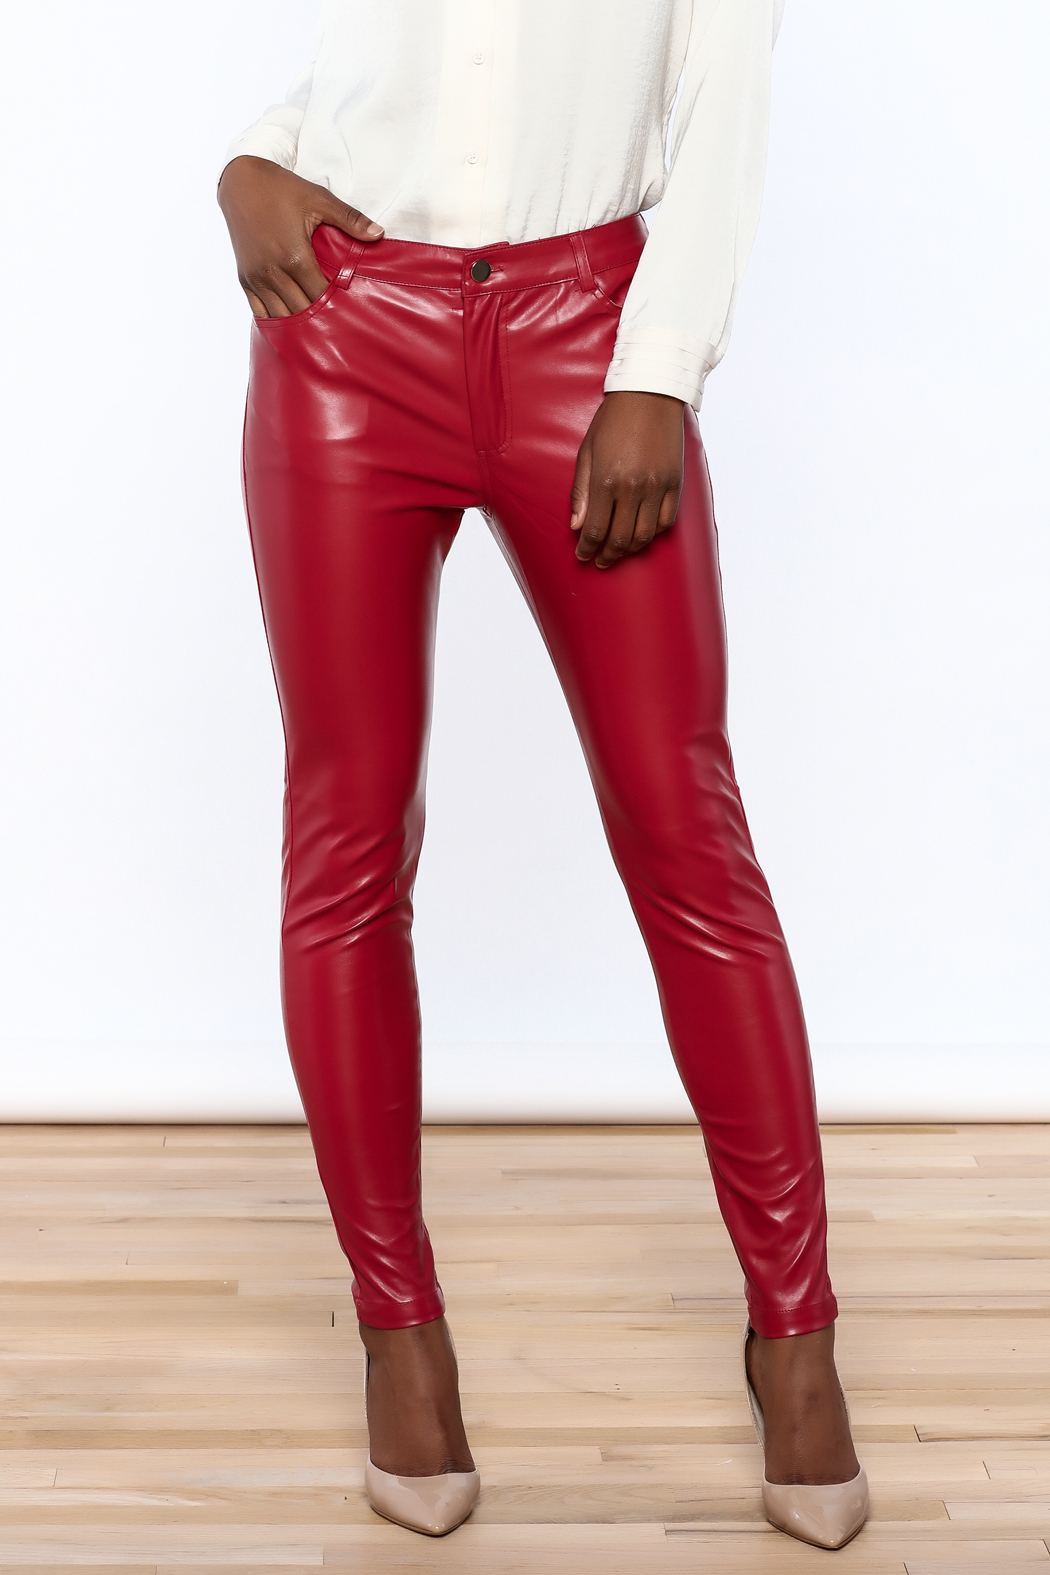 CALS Red Faux Leather Pants from California by YUNI ...